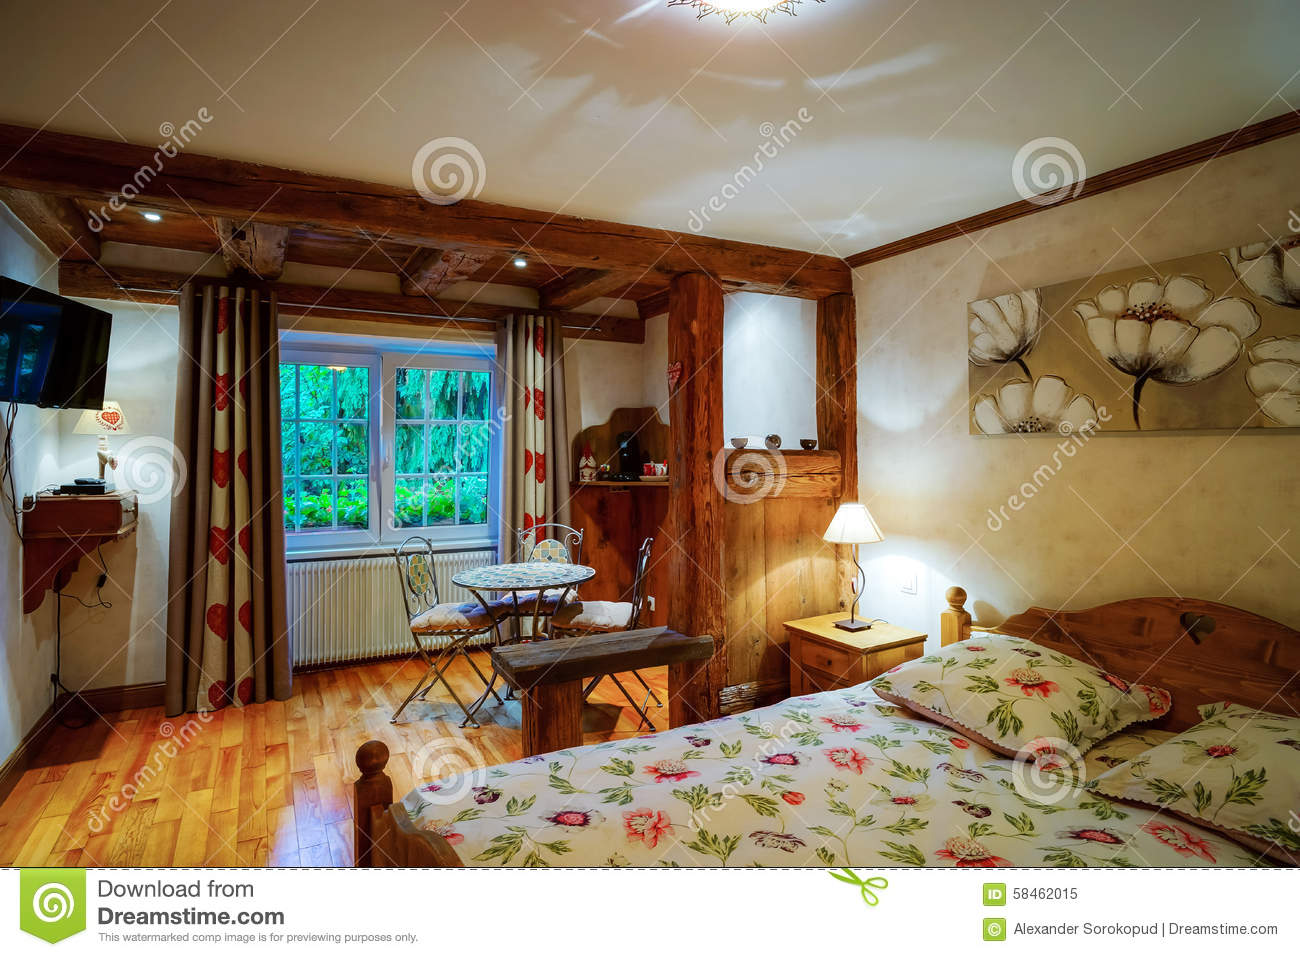 Cosiness wooden apartment interior, alsacien classic style